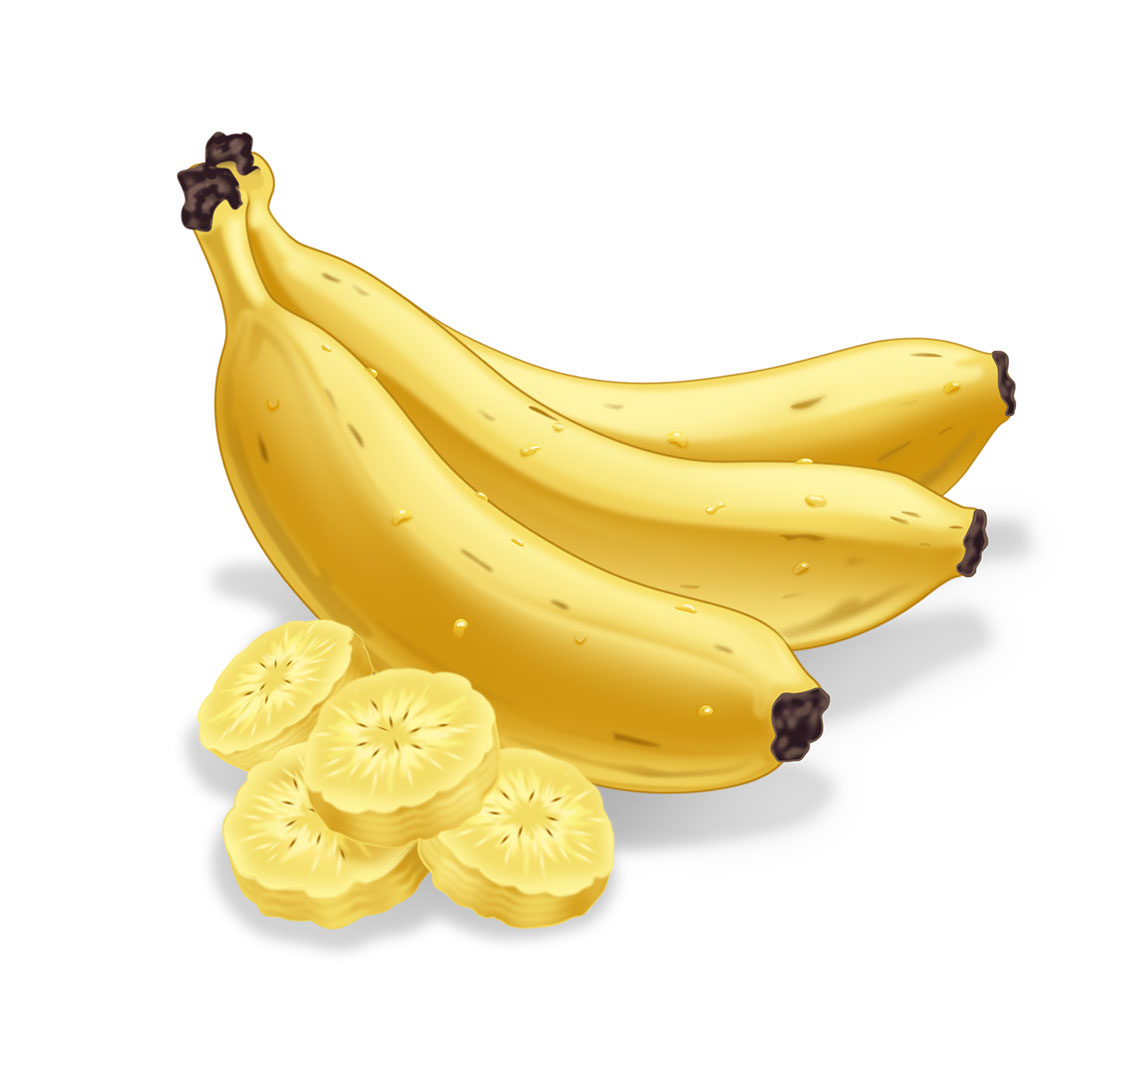 illustration-Food_Bananas-Garth Glazier